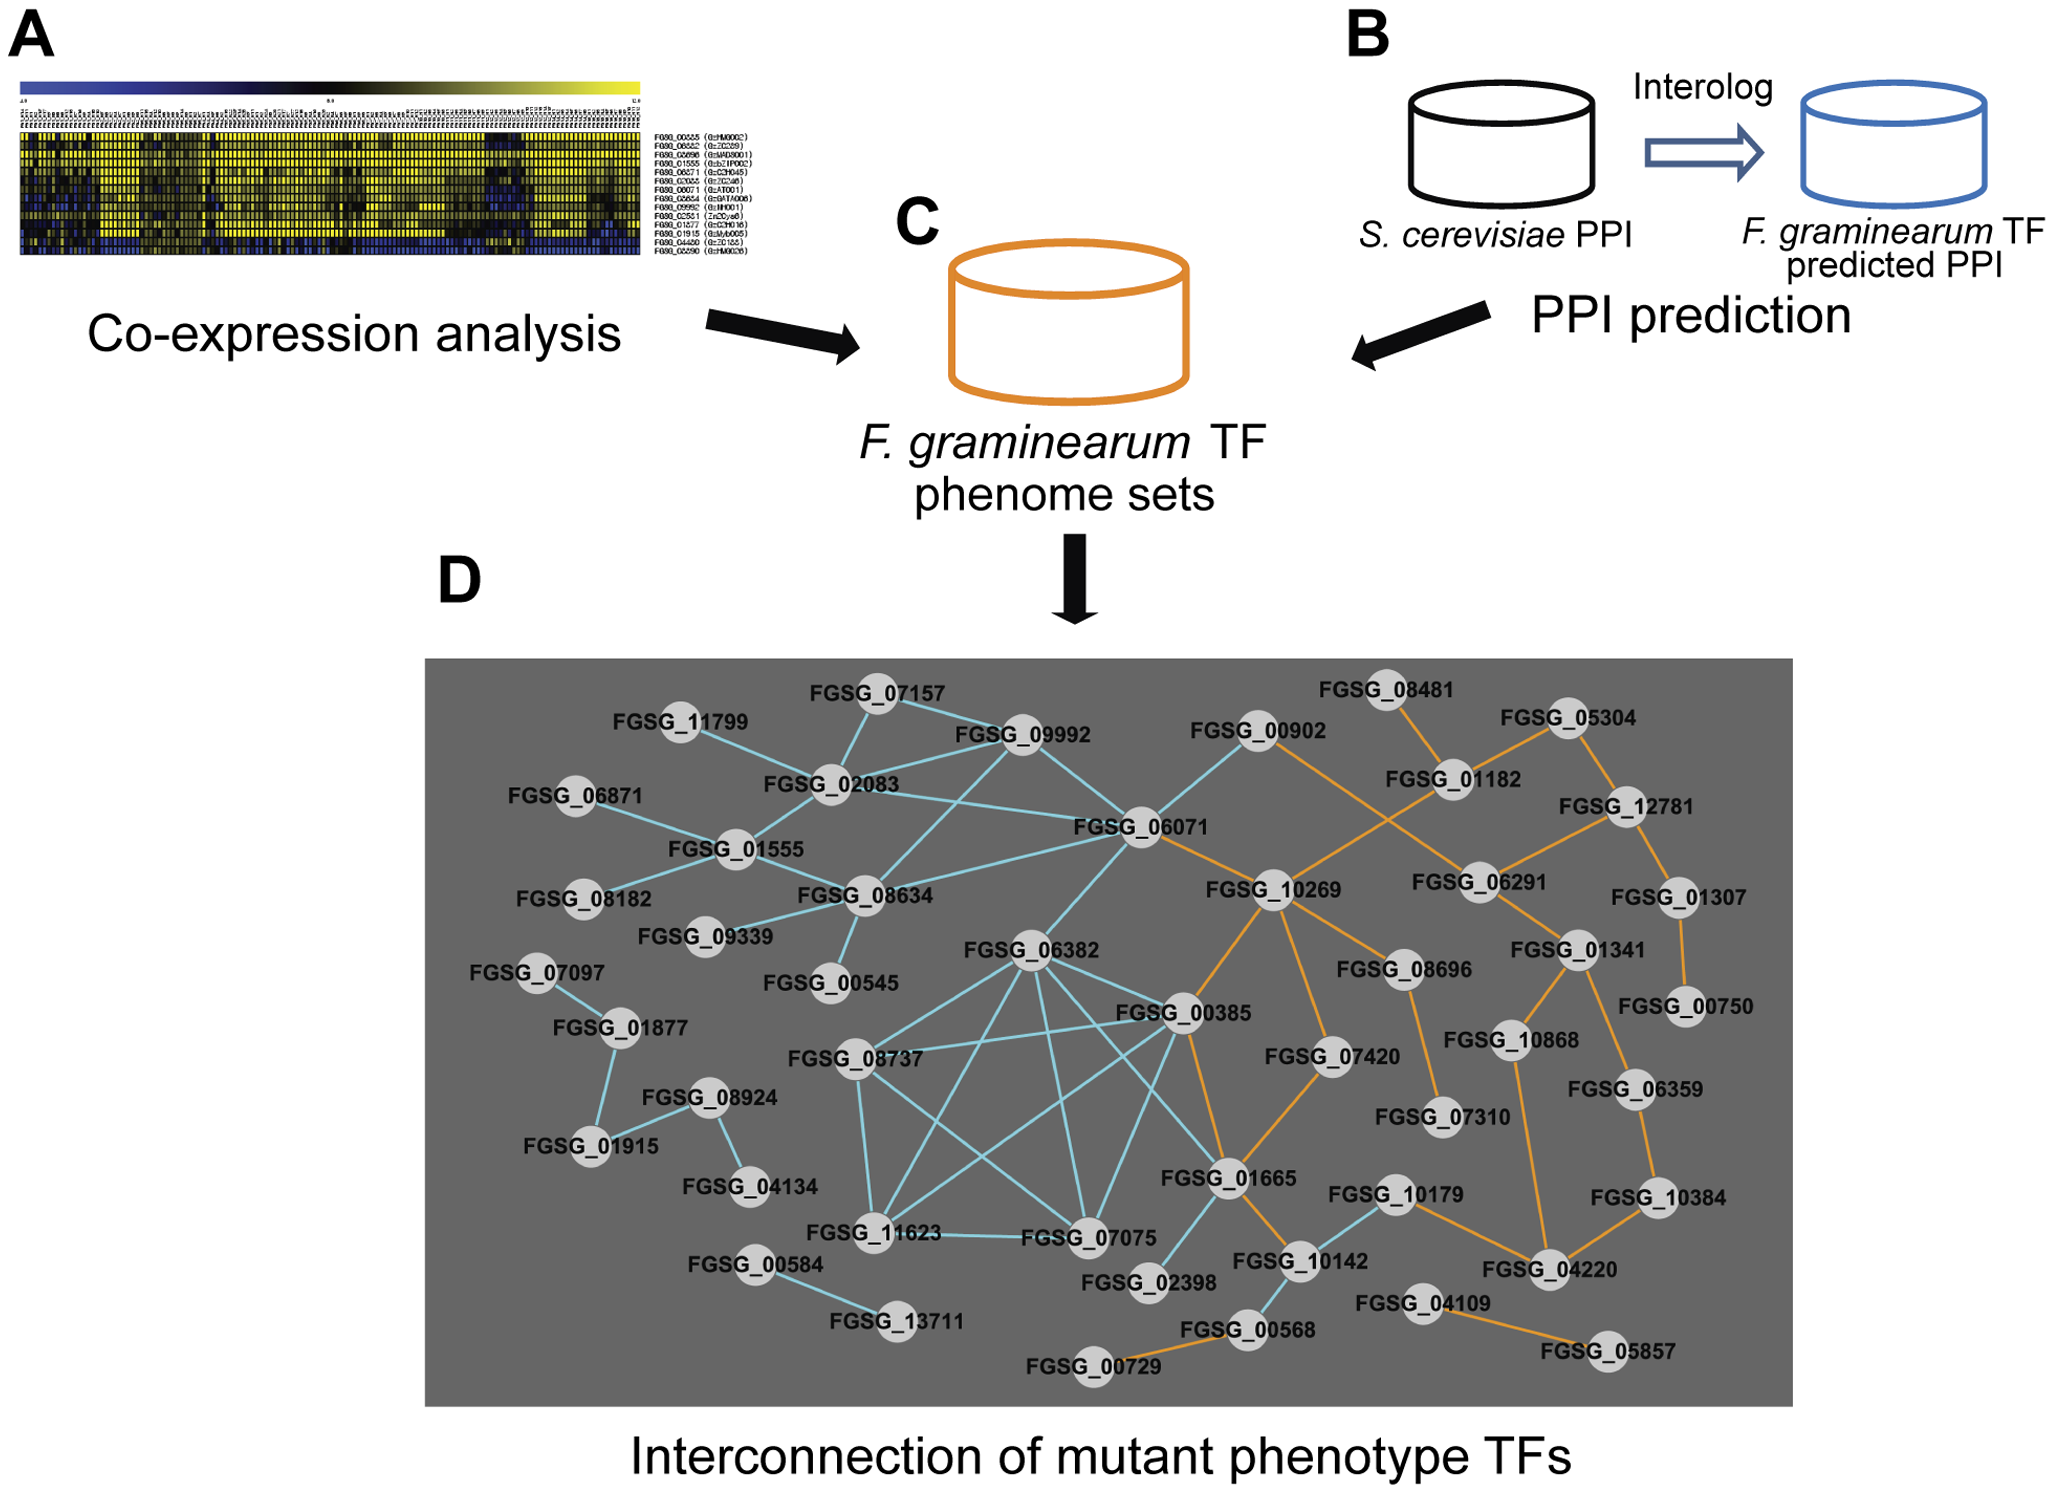 Transcription factors (TFs) with phenotype changes are interconnected either by co-expression or predicted protein-protein interaction (PPI).